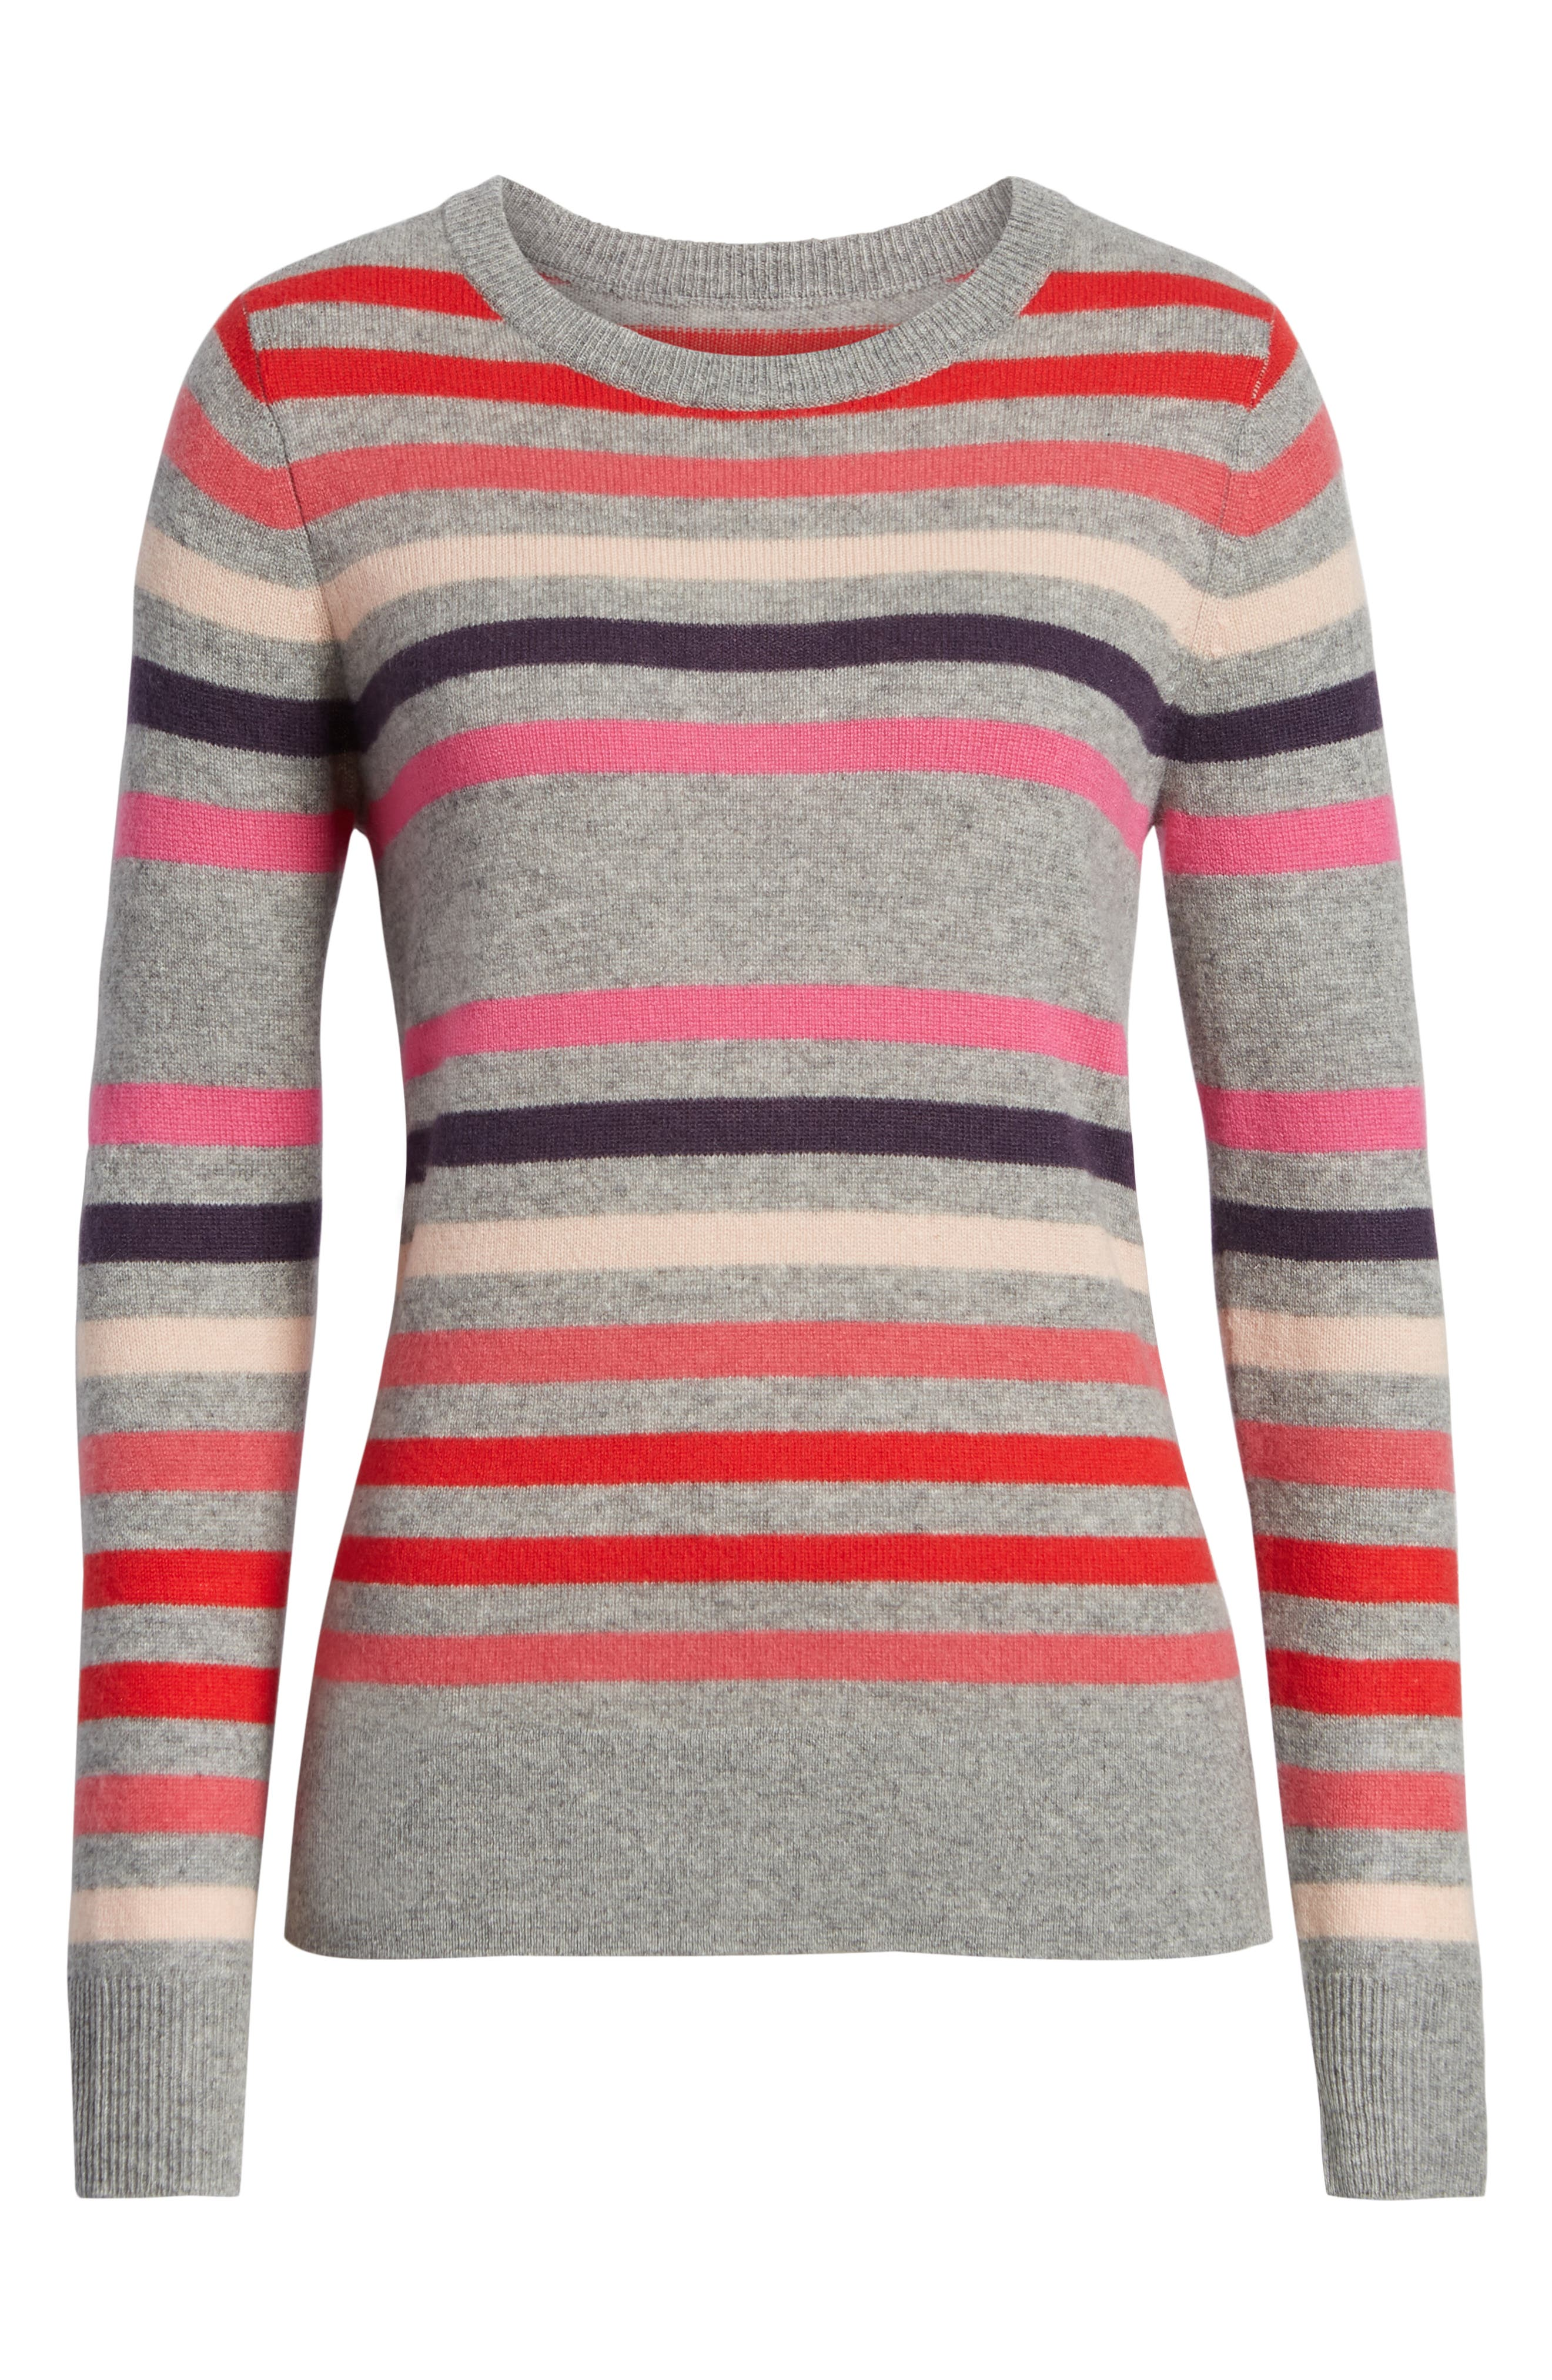 Crewneck Cashmere Sweater,                             Alternate thumbnail 6, color,                             GREY- PINK STRIPE